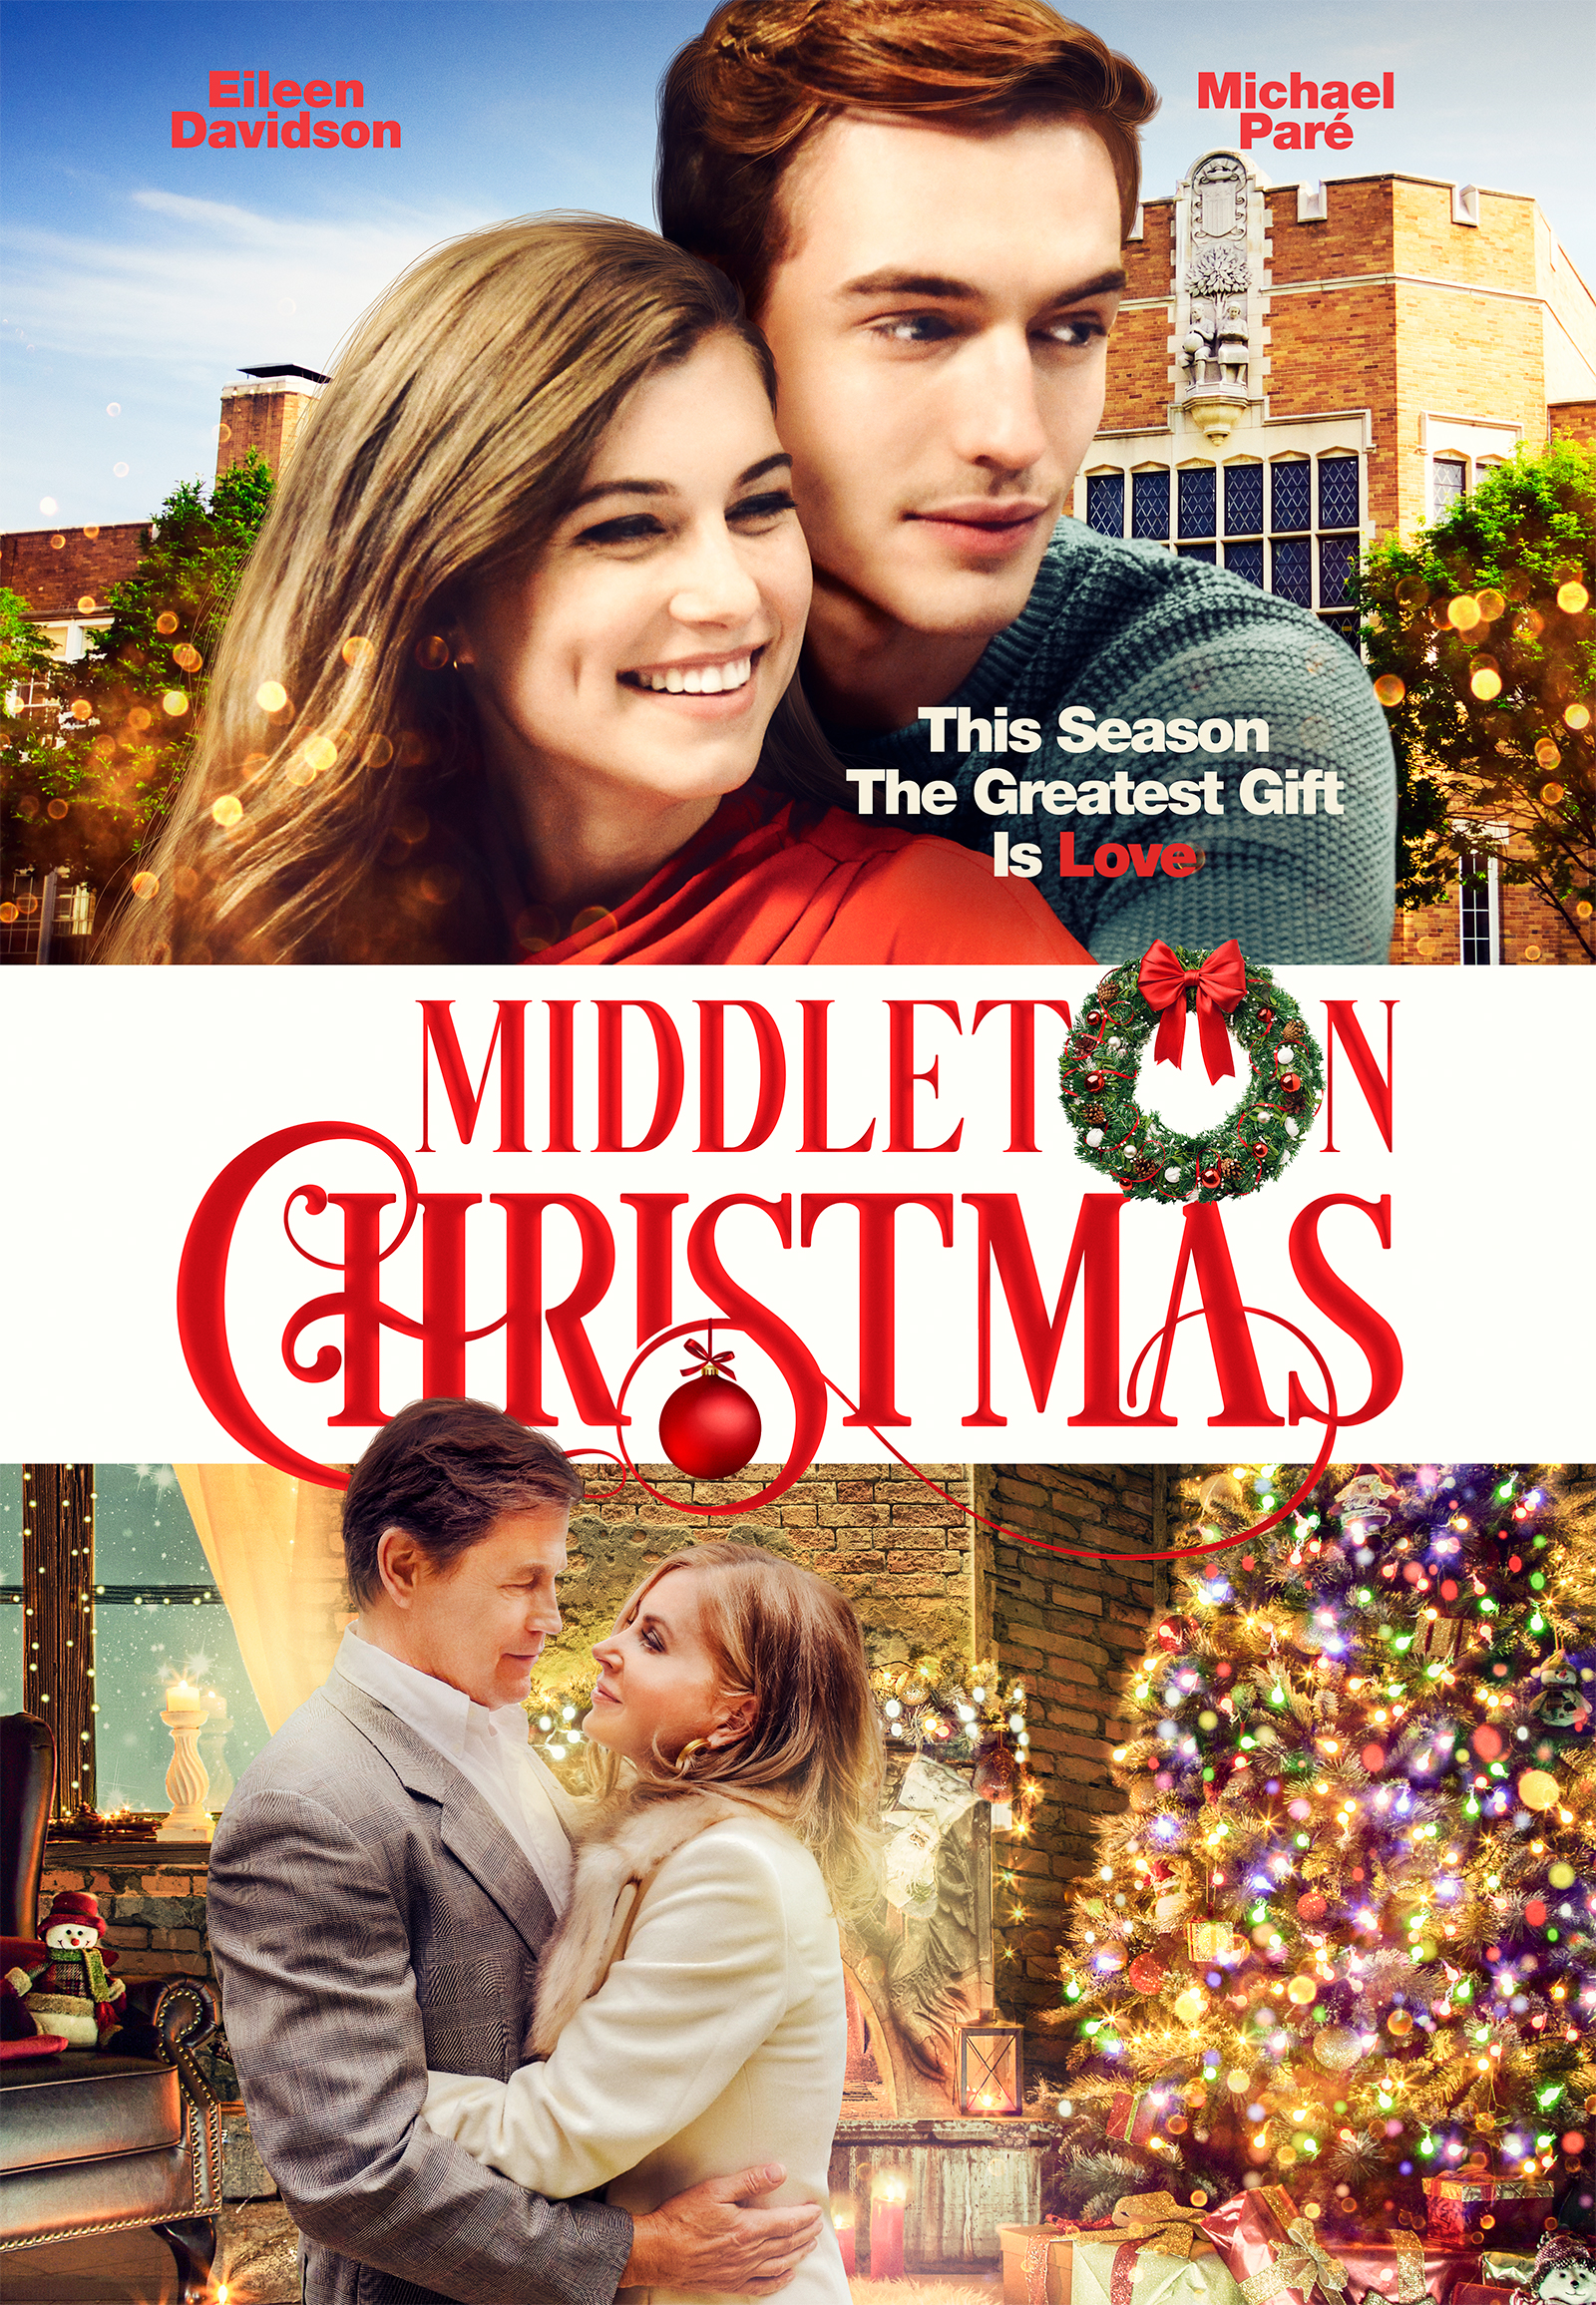 'Middleton Christmas' Starring Eileen Davidson, Michael Paré, Trevor Stines, and Kennedy Tucker